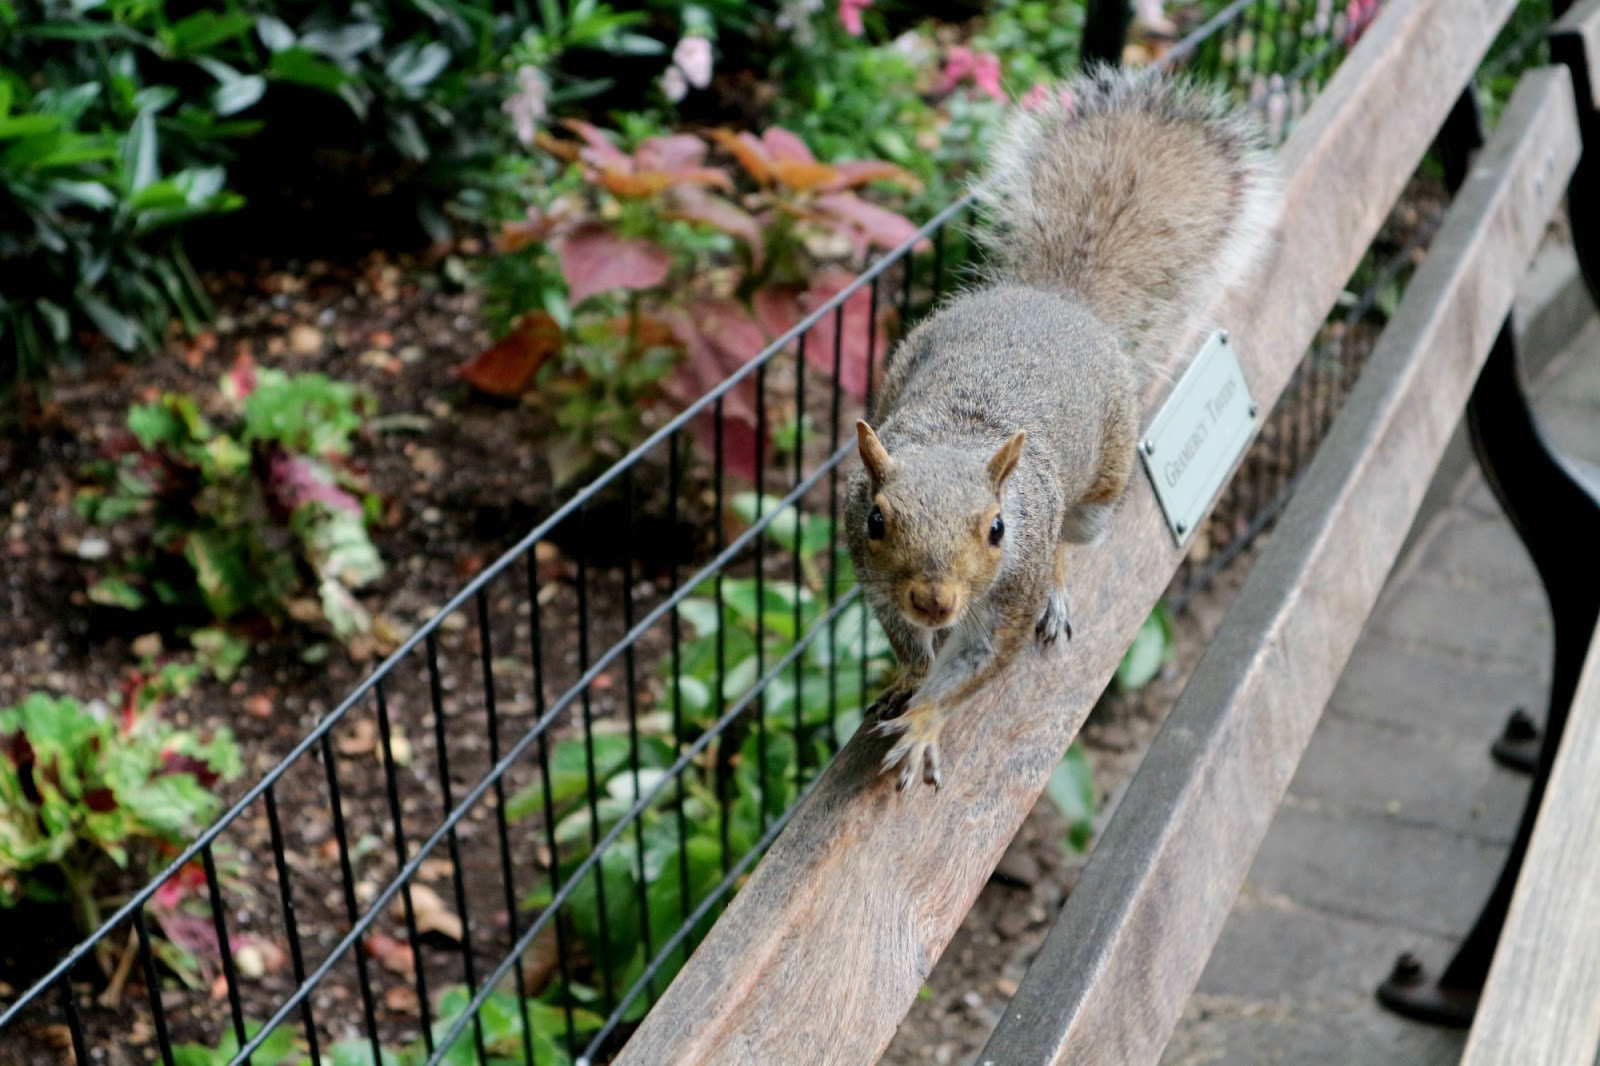 Madison Square Park squirrels